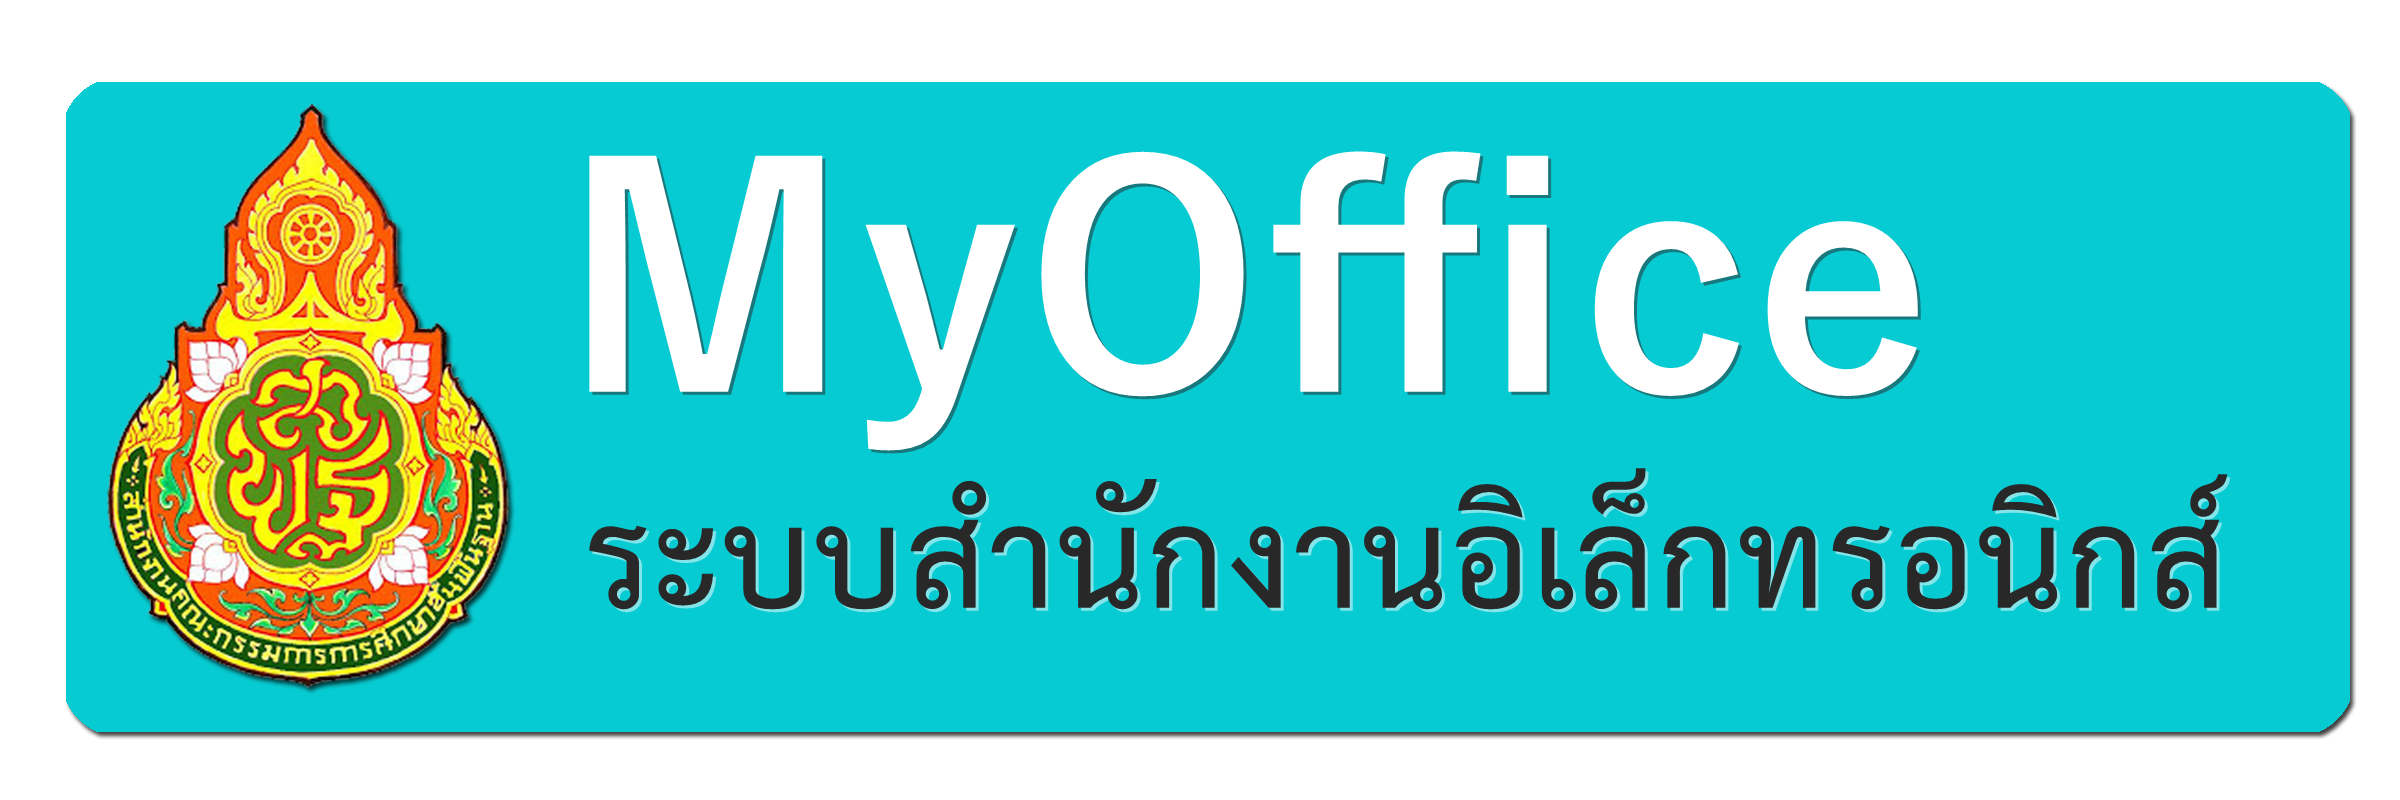 http://159.192.132.107/myoffice/2564/index.php